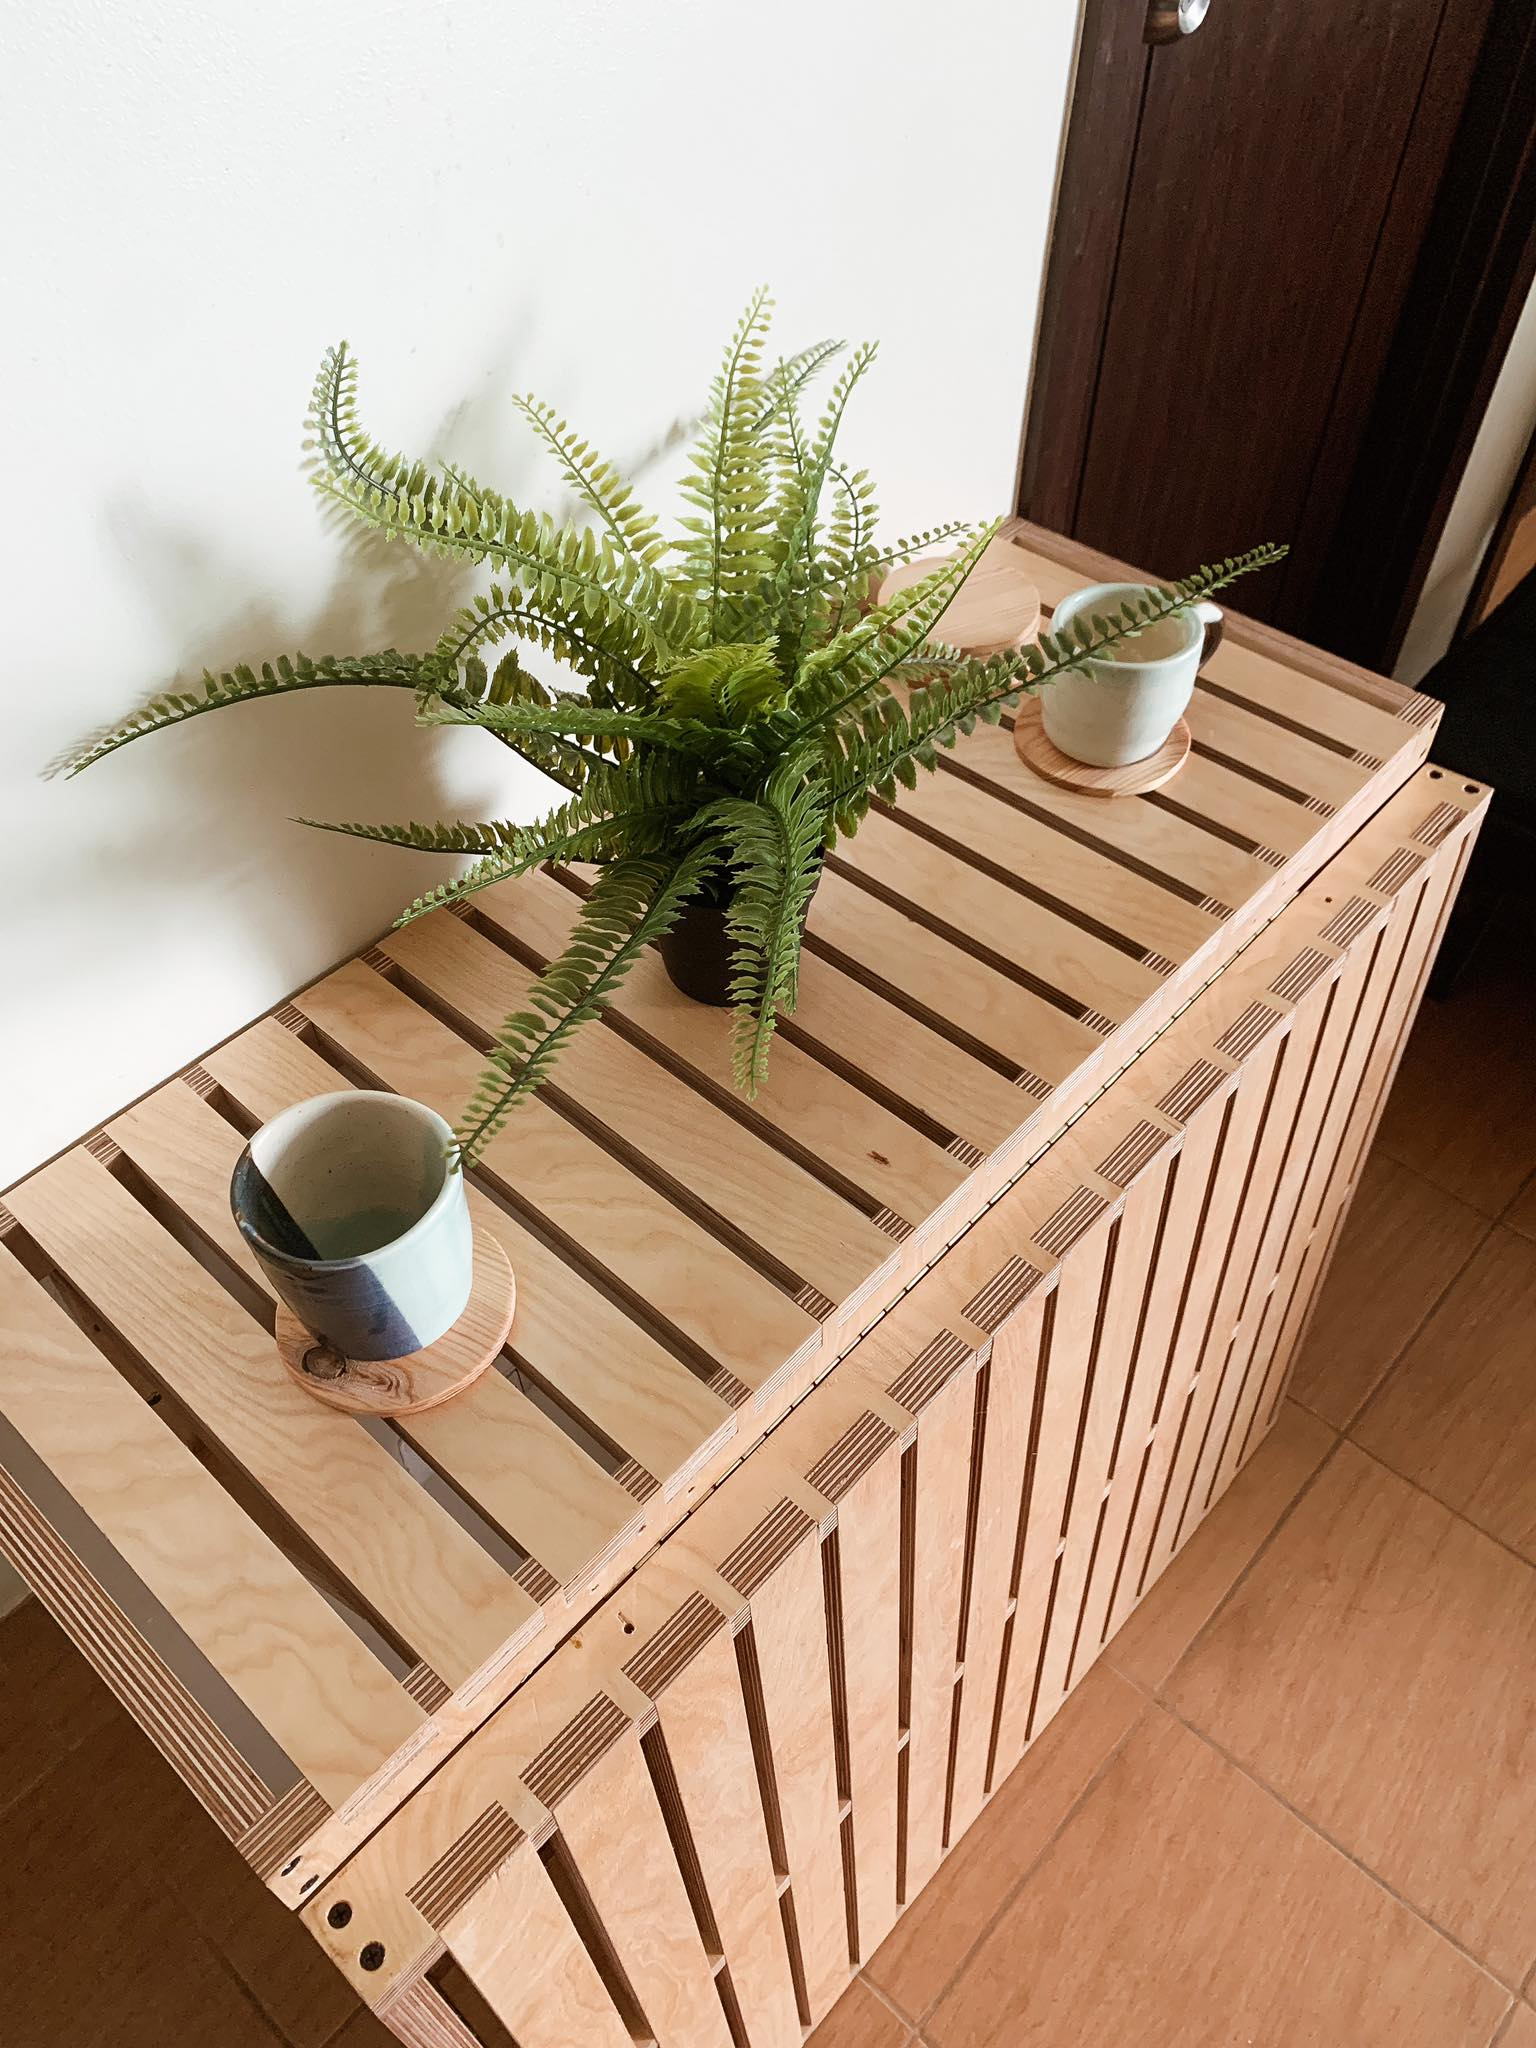 space-saving table with plants